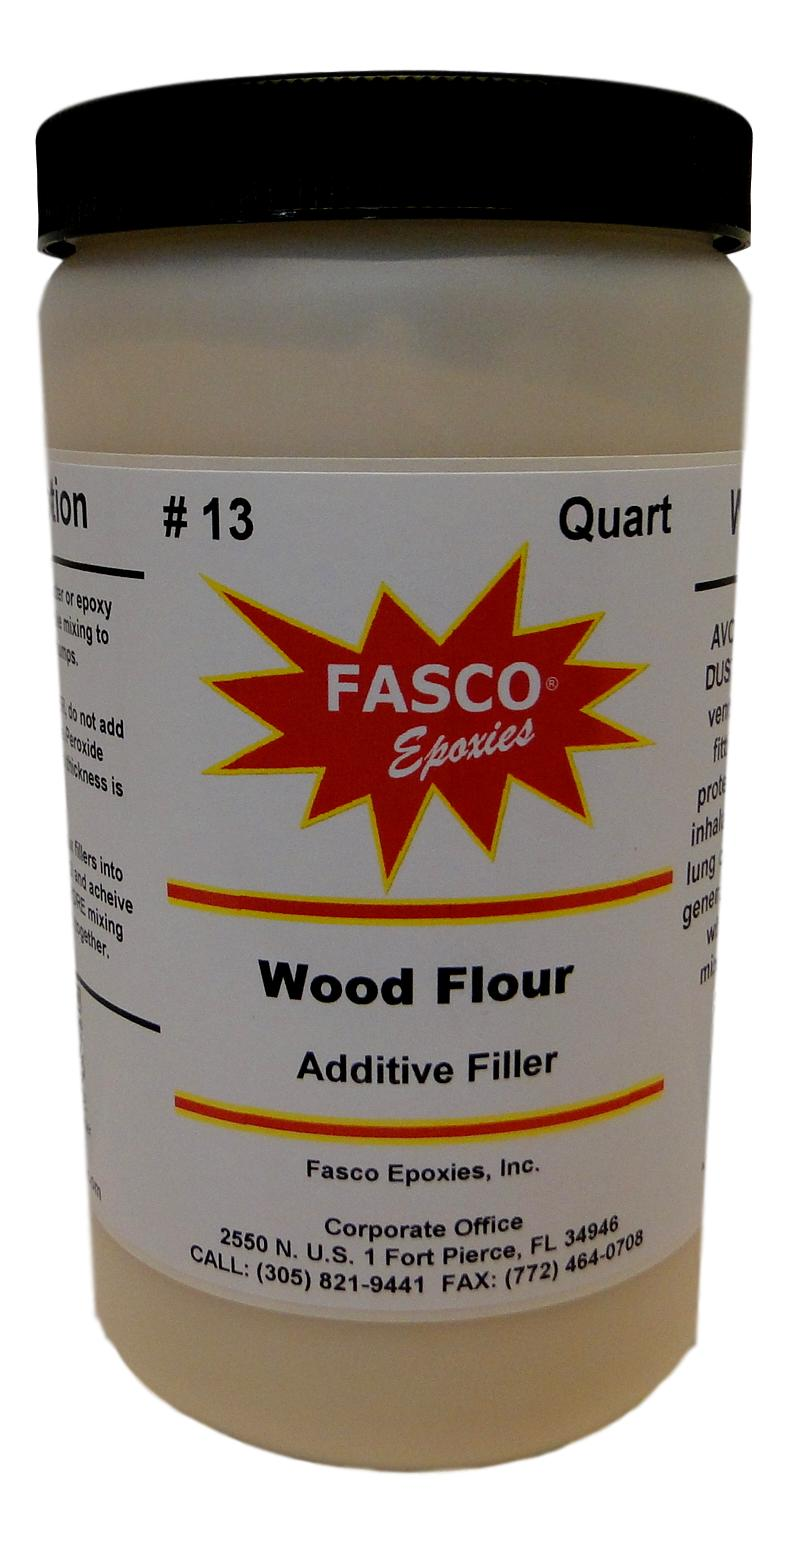 Wood Flour Additive